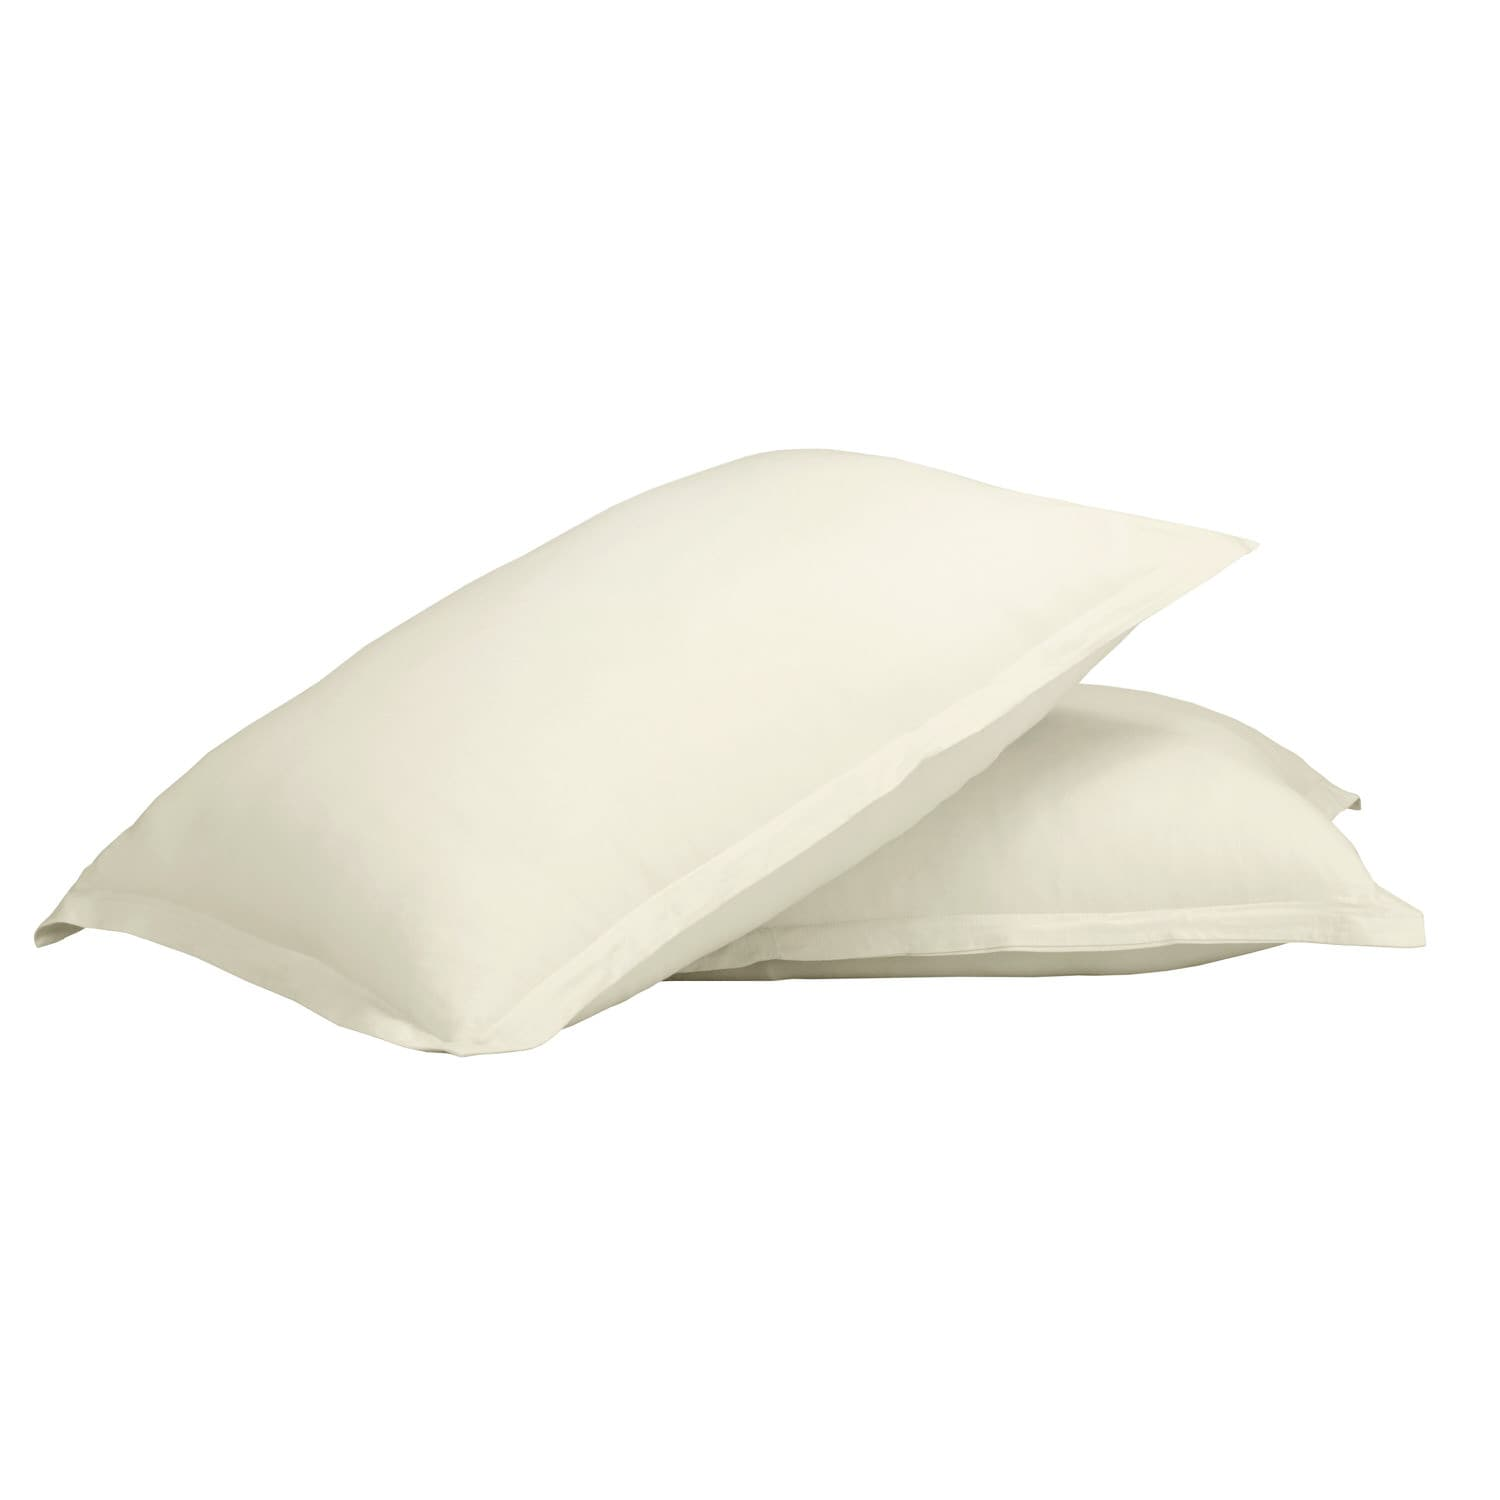 100% Premium Combed Cotton Jersey Ivory Fitted Pillow Case Set With Aloe Vera Treatment